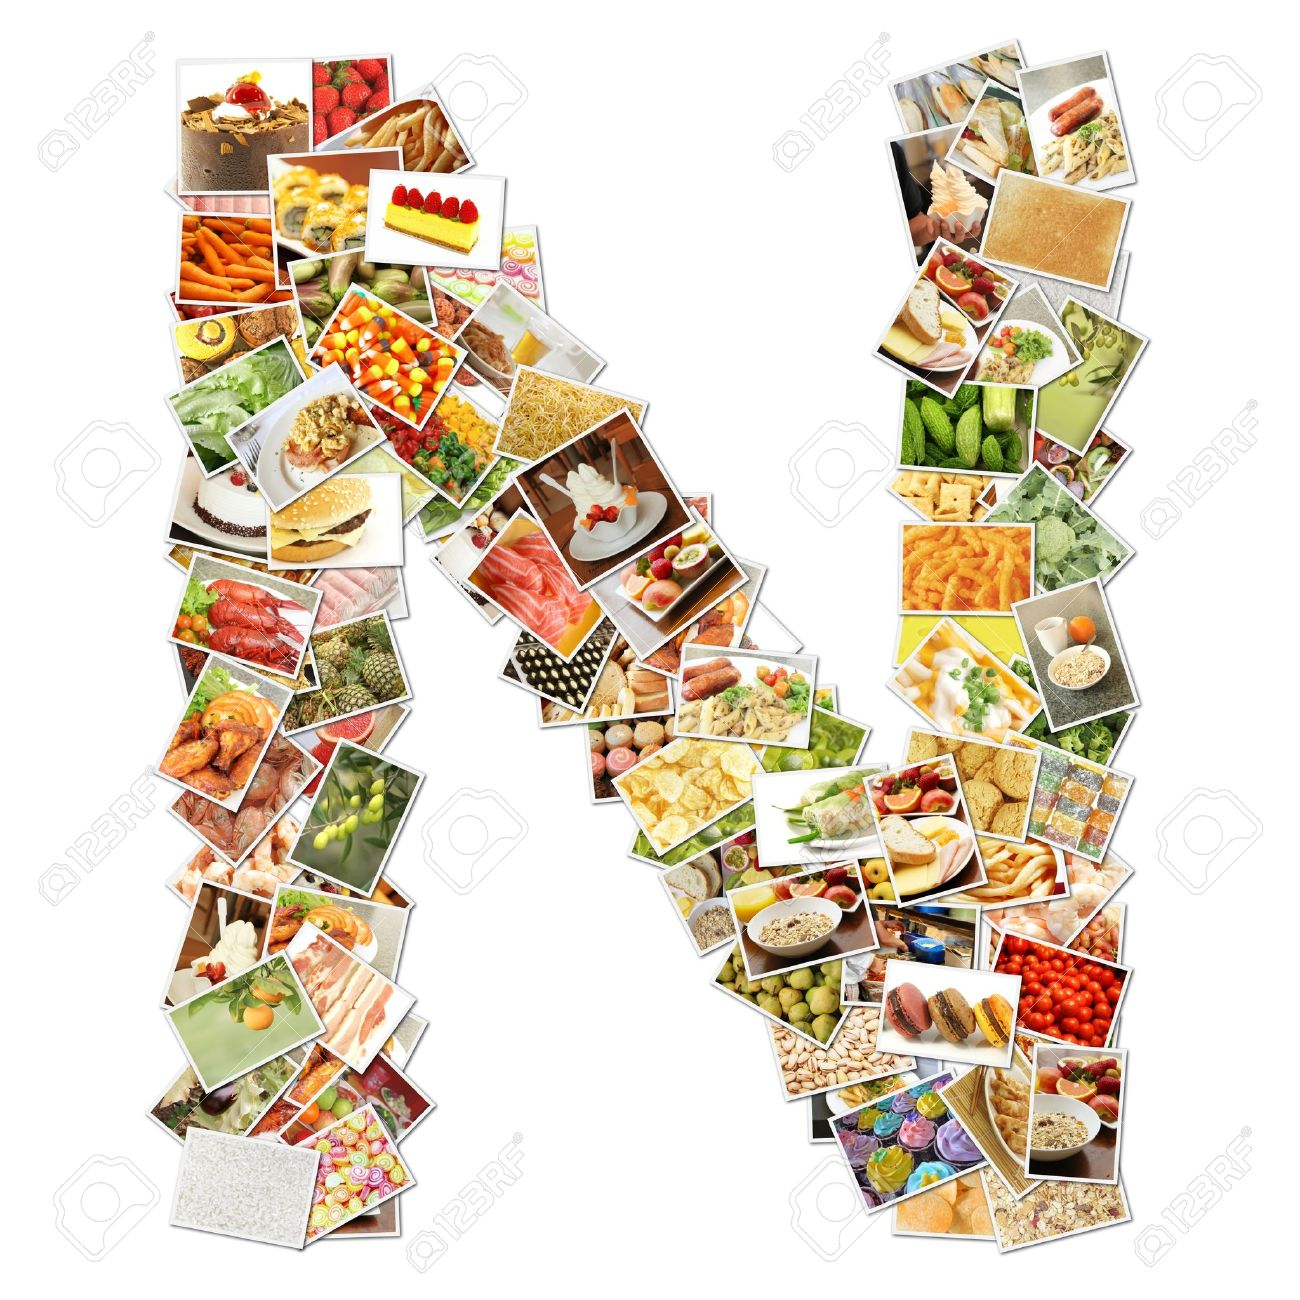 Letter N with Food Collage Concept Art Stock Photo - 9691831